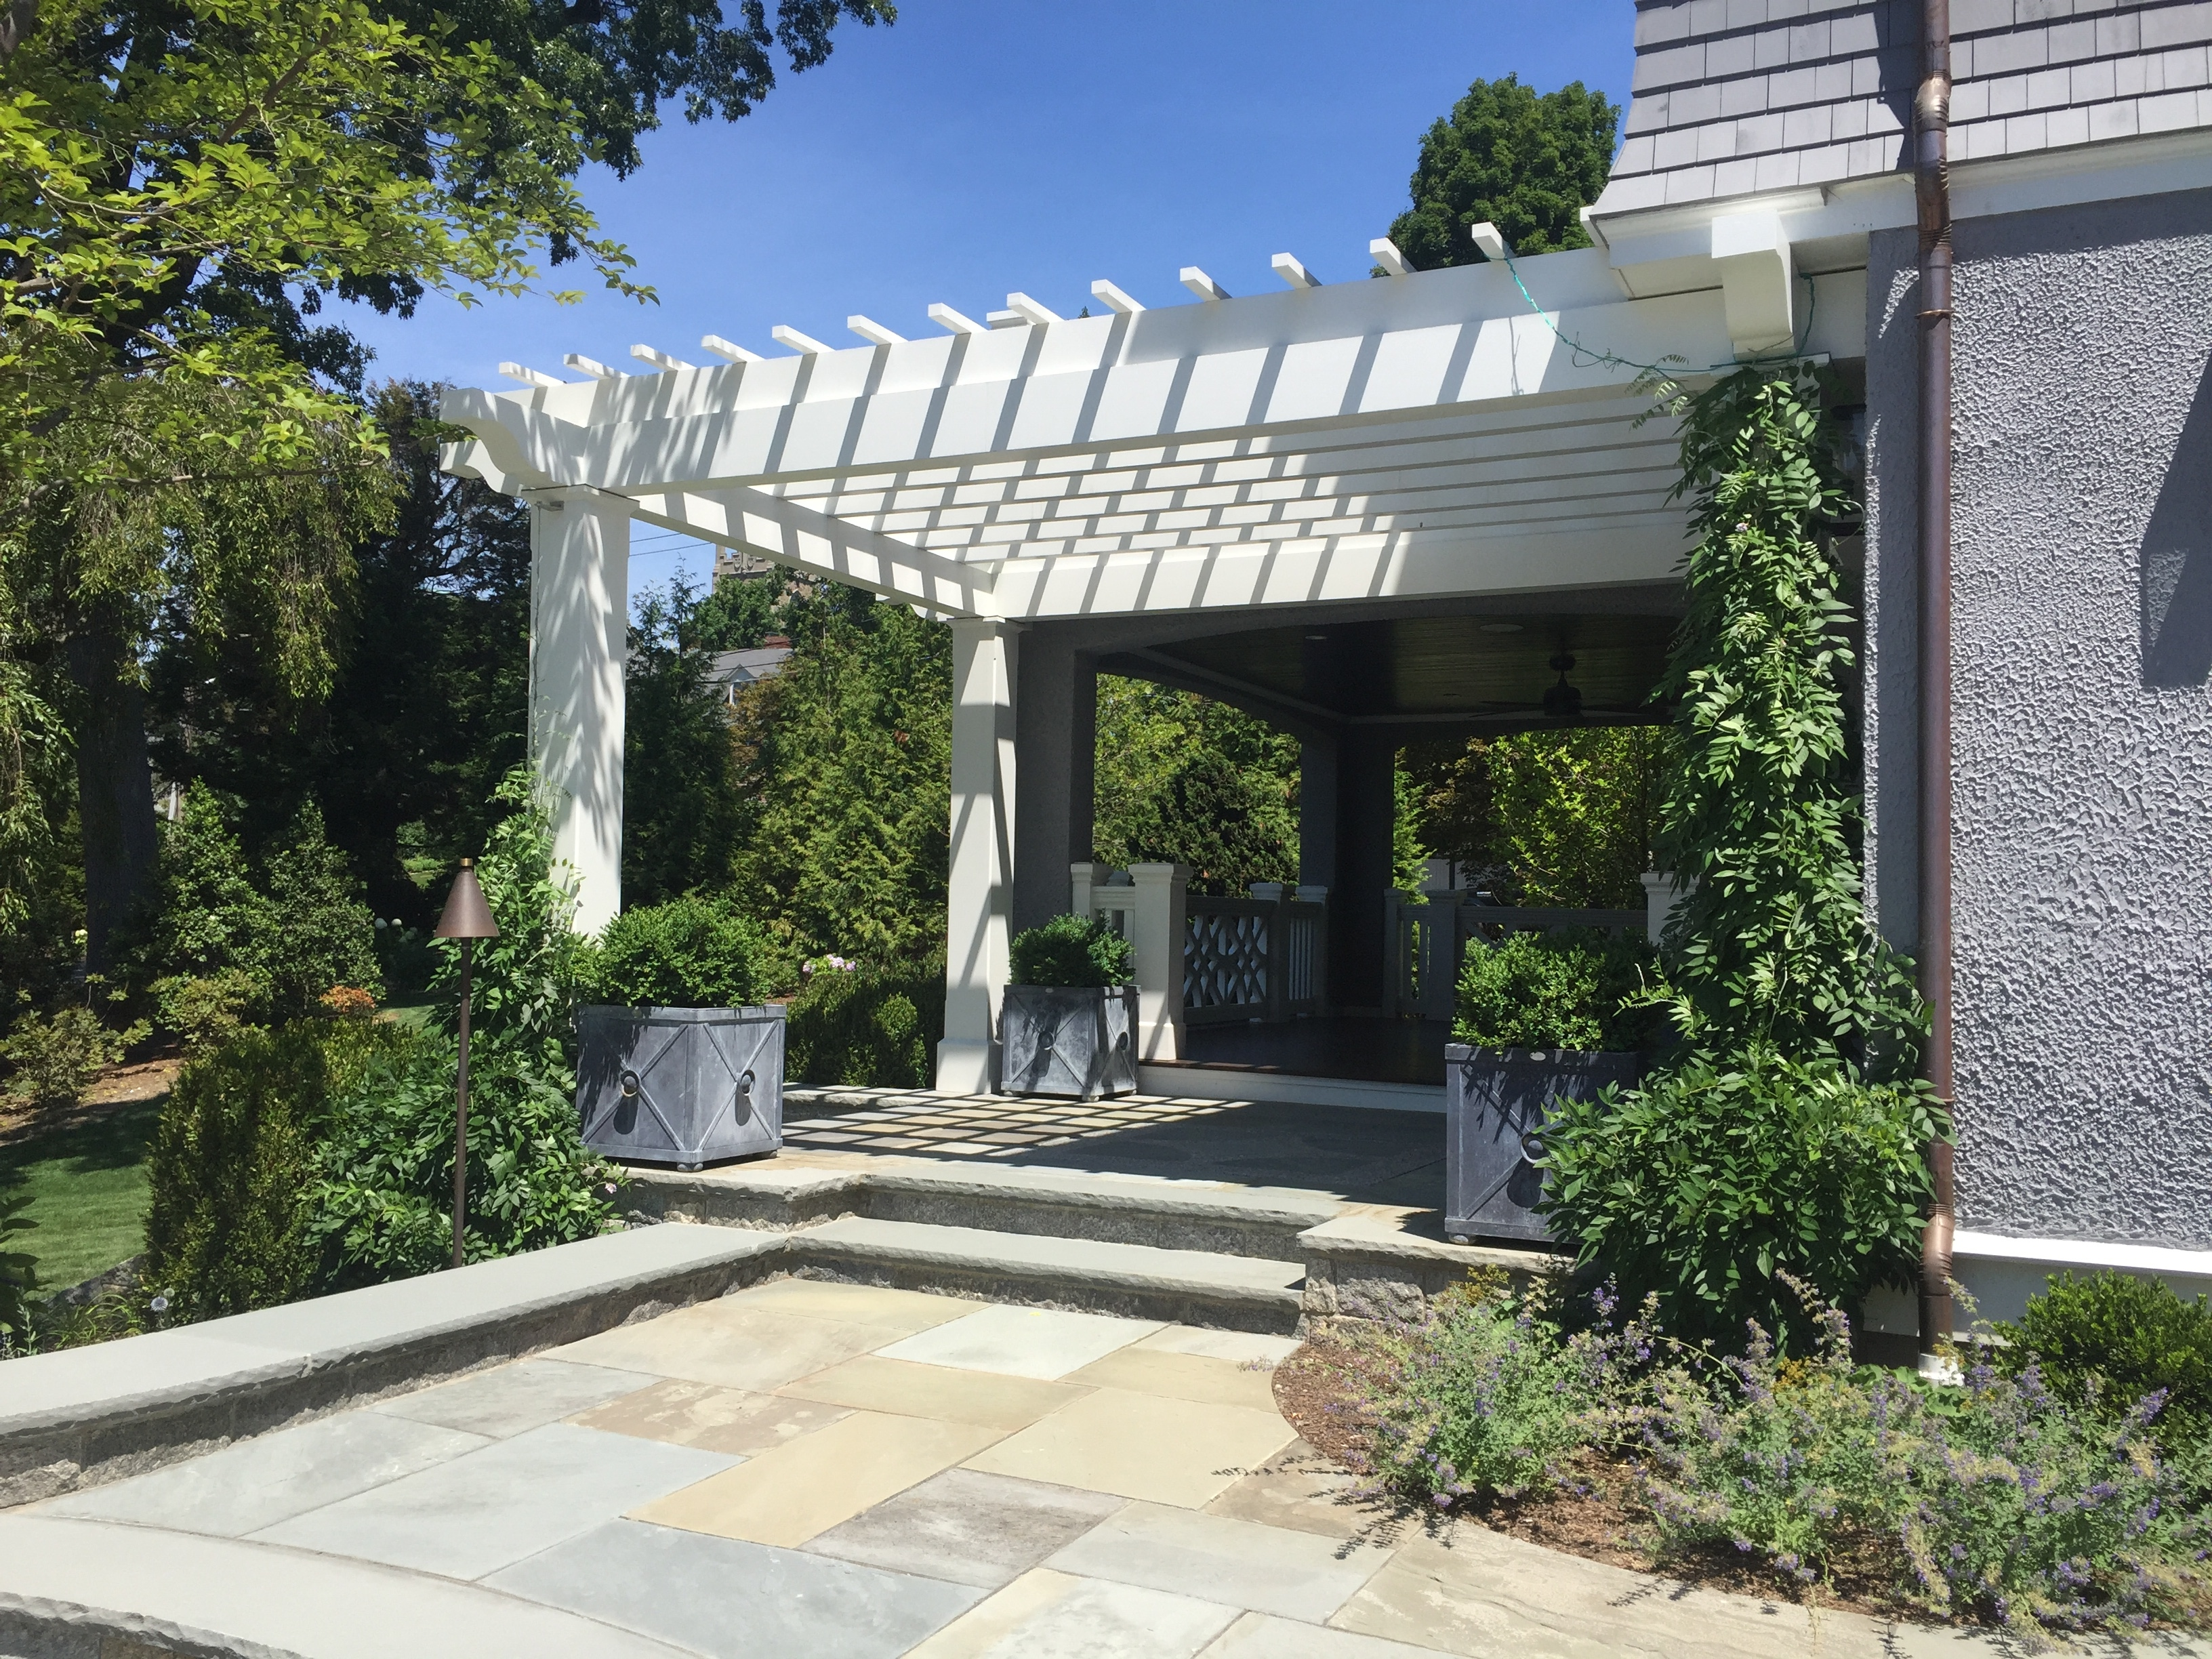 Pergola by Perfection Fence